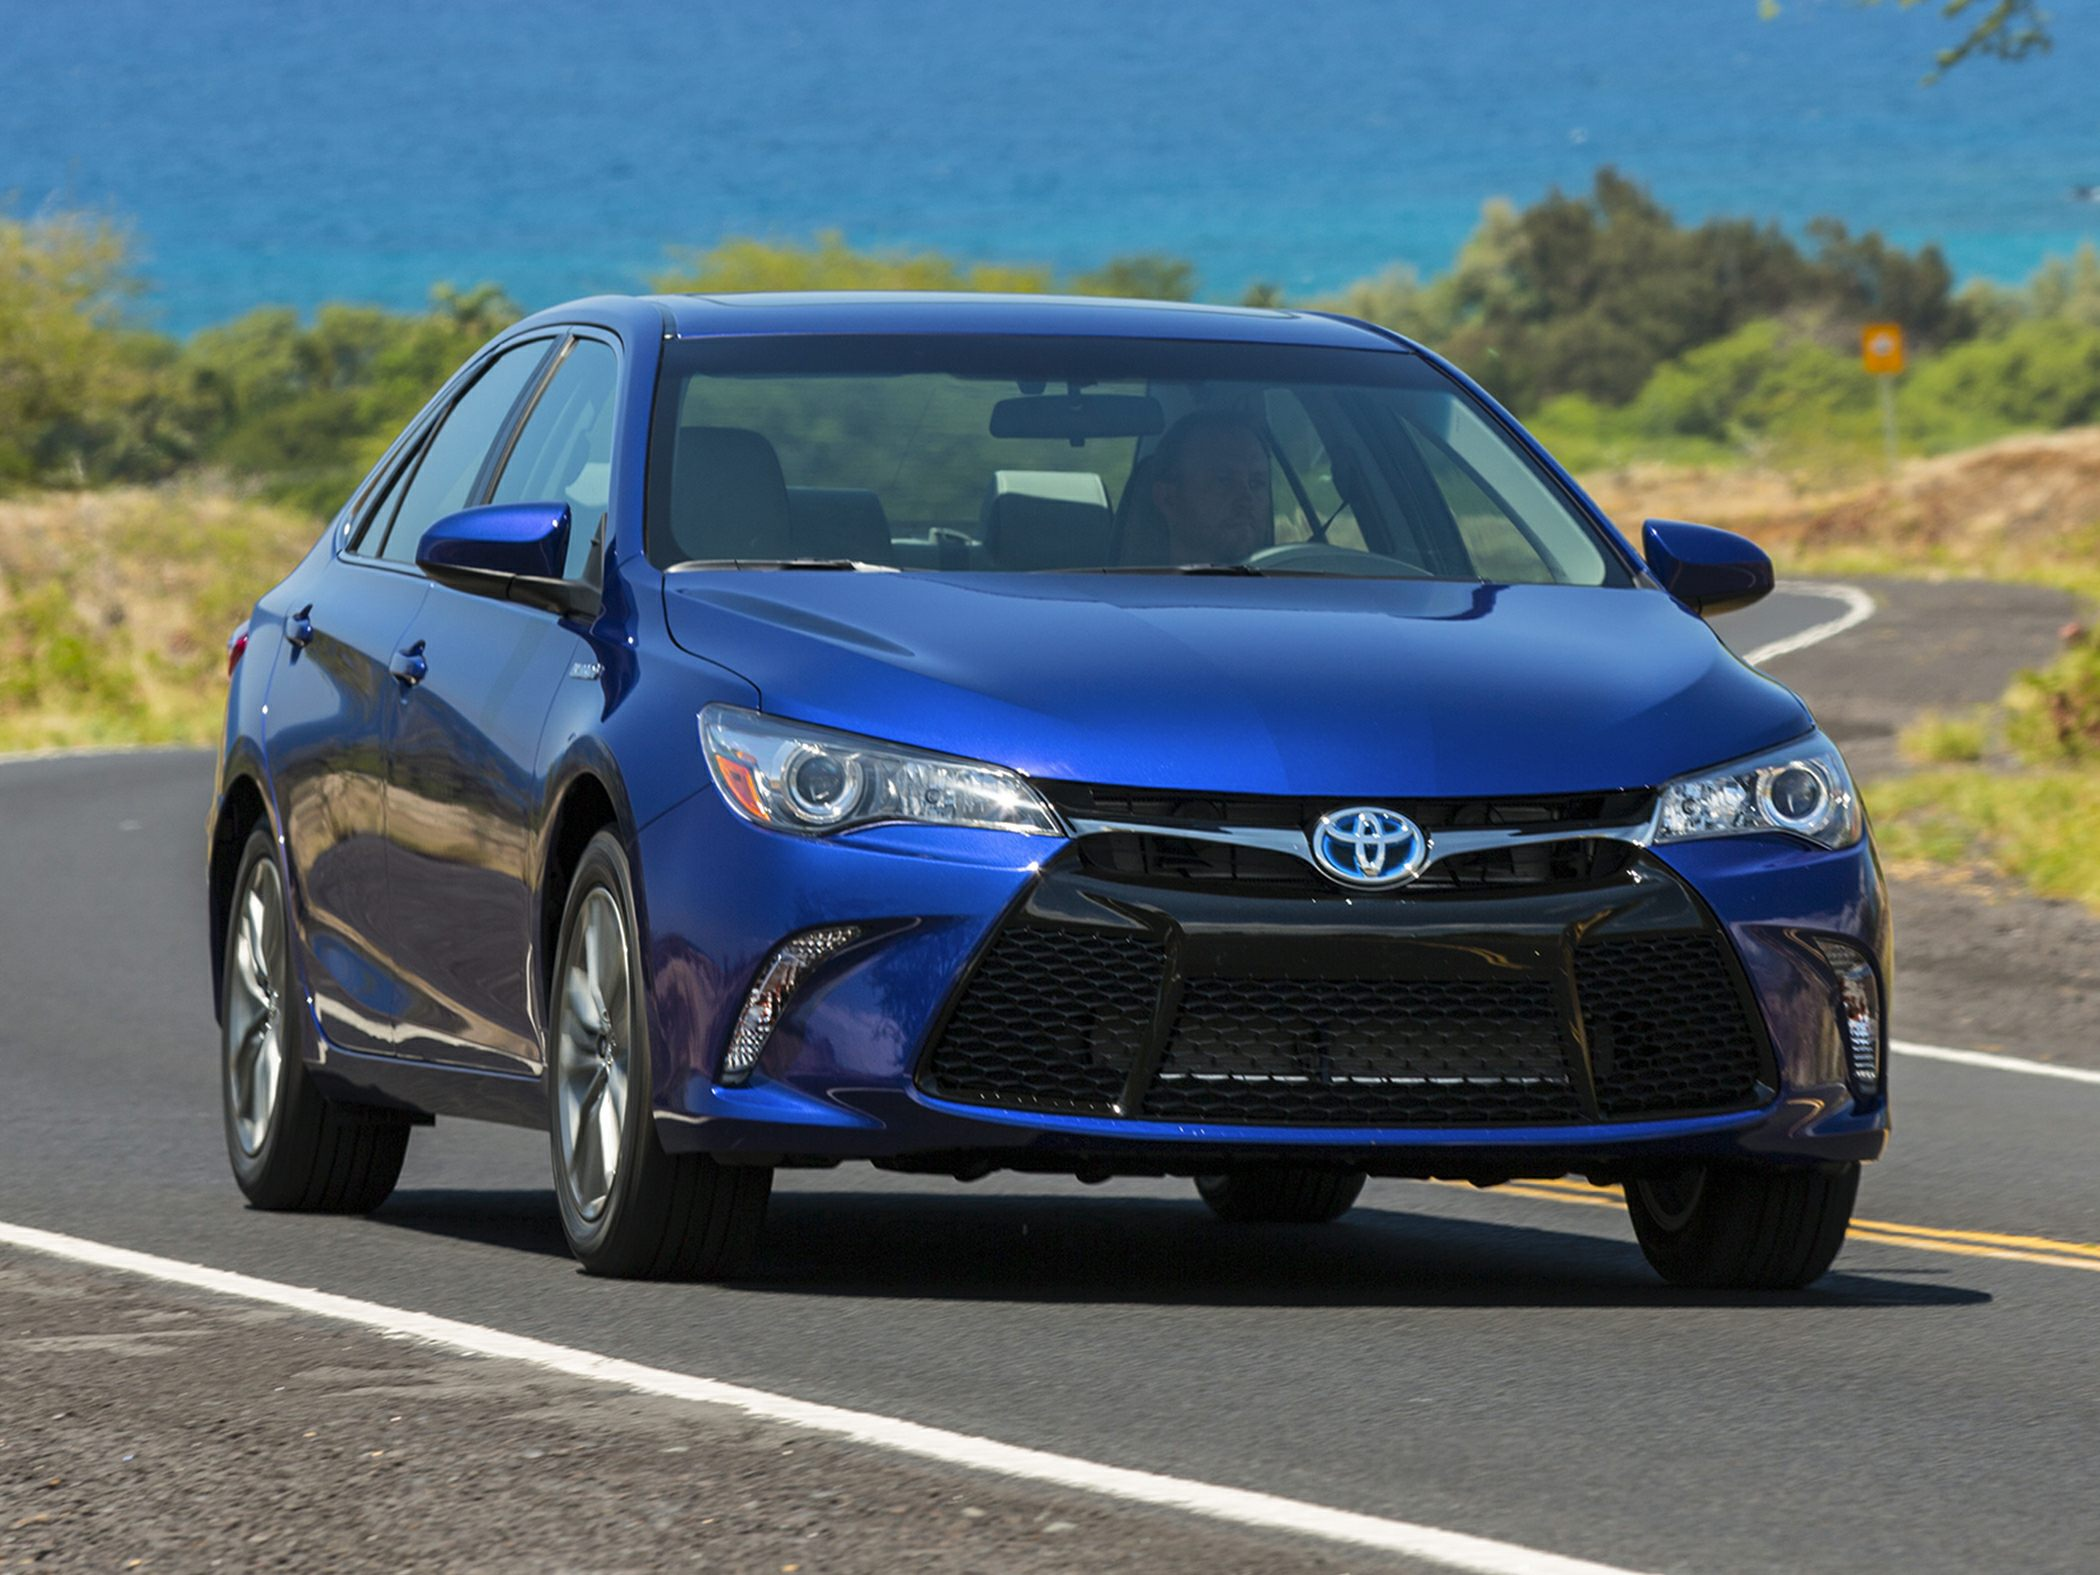 2017 Toyota Camry Hybrid For Sale In Regina Taylor Wire Diagram Color Labels Le